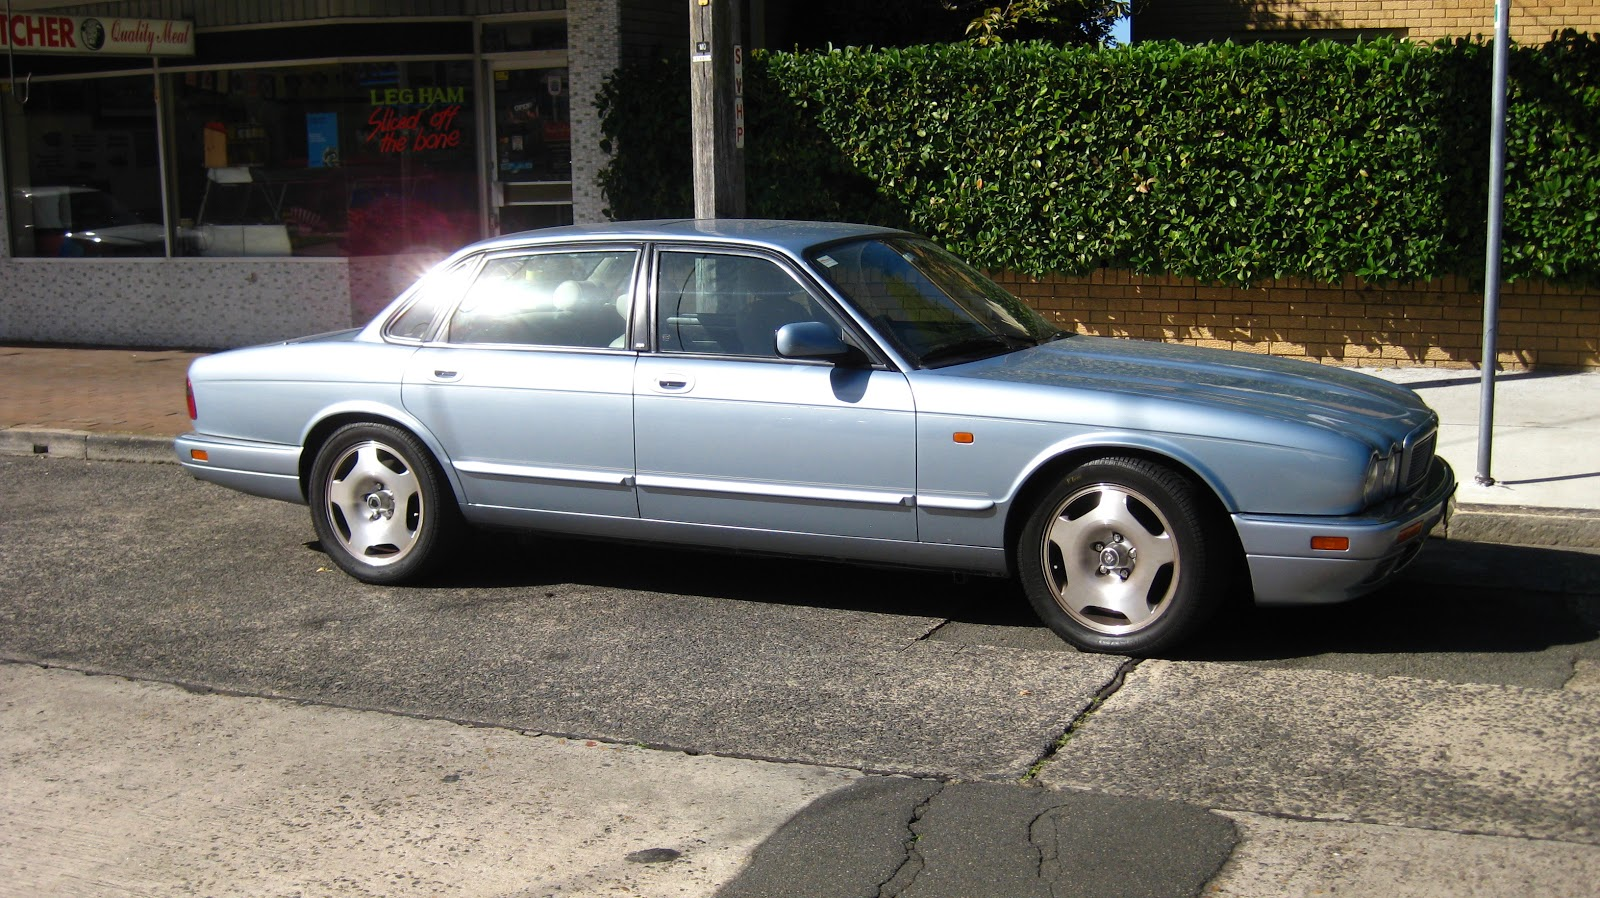 Aussie Old Parked Cars  1995 Jaguar X300 XJR